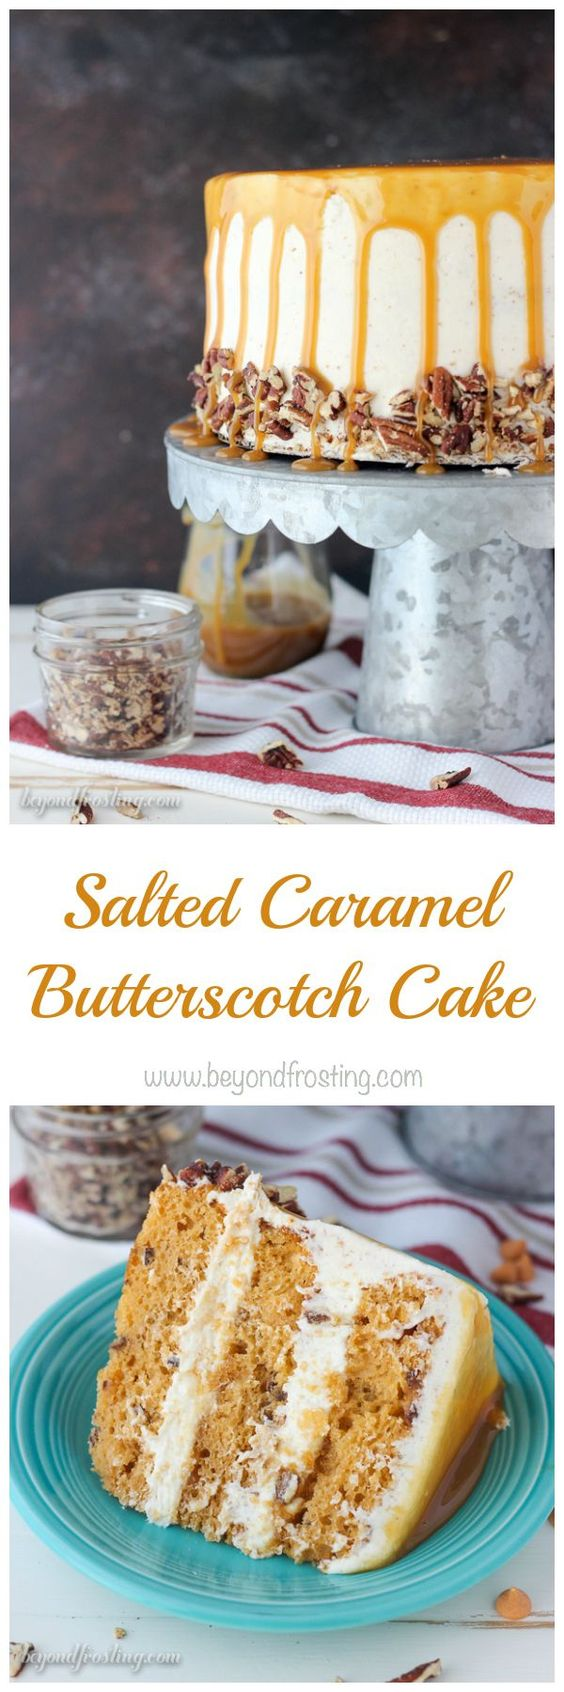 This Salted Caramel Butterscotch cake is one of the best cakes I've ever eaten…